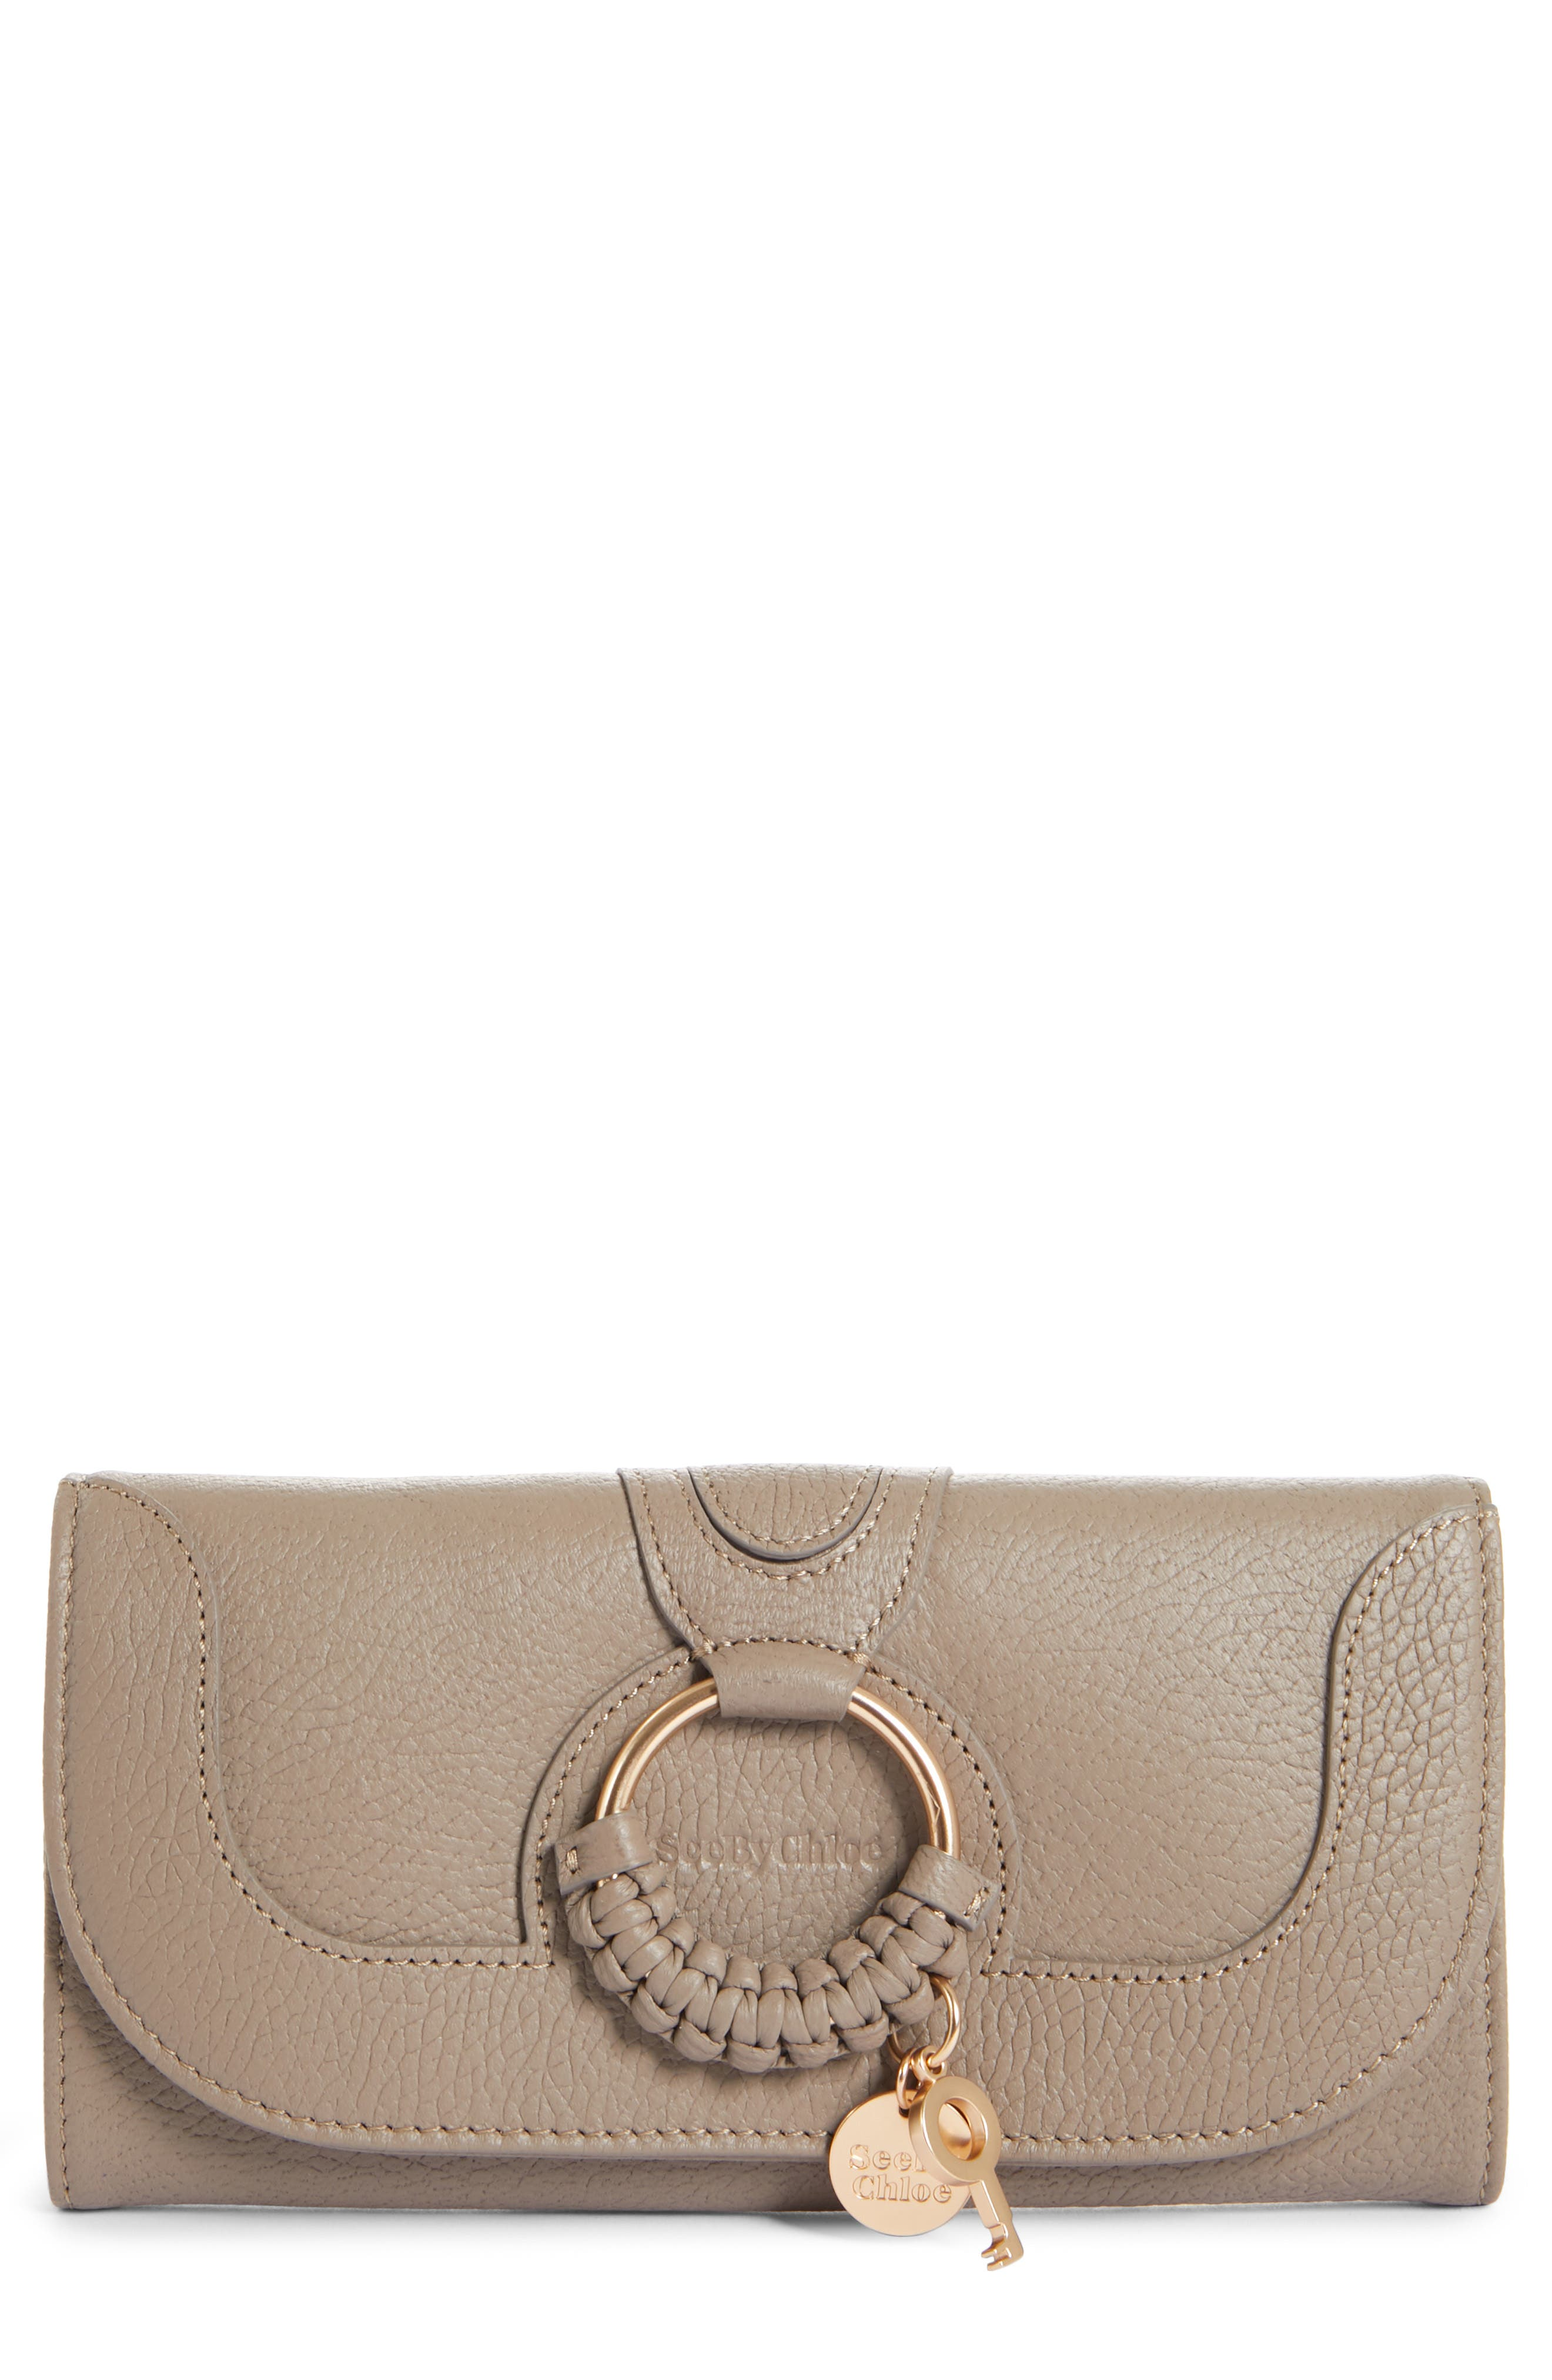 Hana Large Leather Wallet,                         Main,                         color, MOTTY GREY